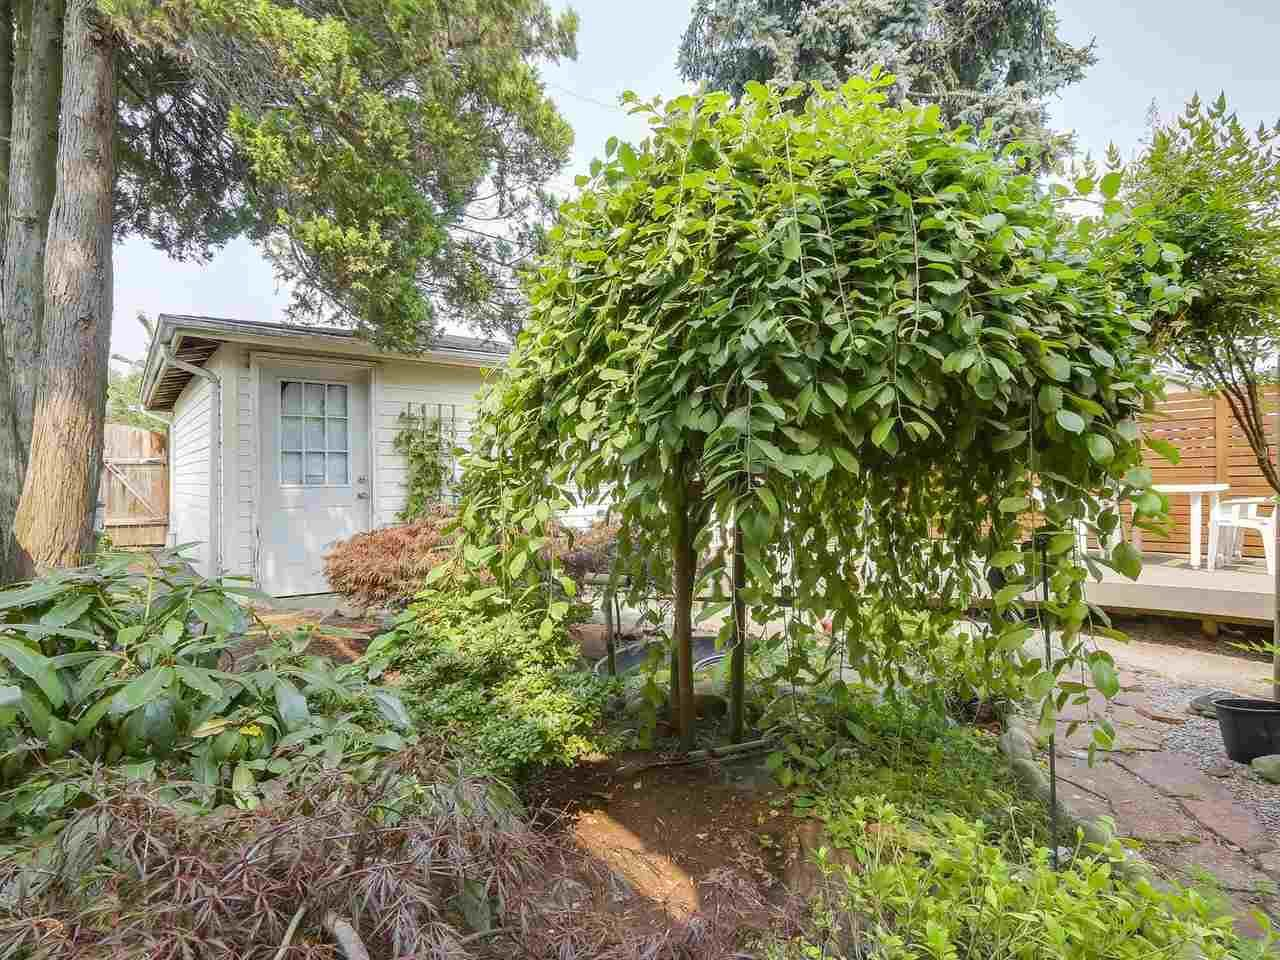 Photo 17: Photos: 165 E 55TH AVENUE in Vancouver: South Vancouver House for sale (Vancouver East)  : MLS®# R2297472